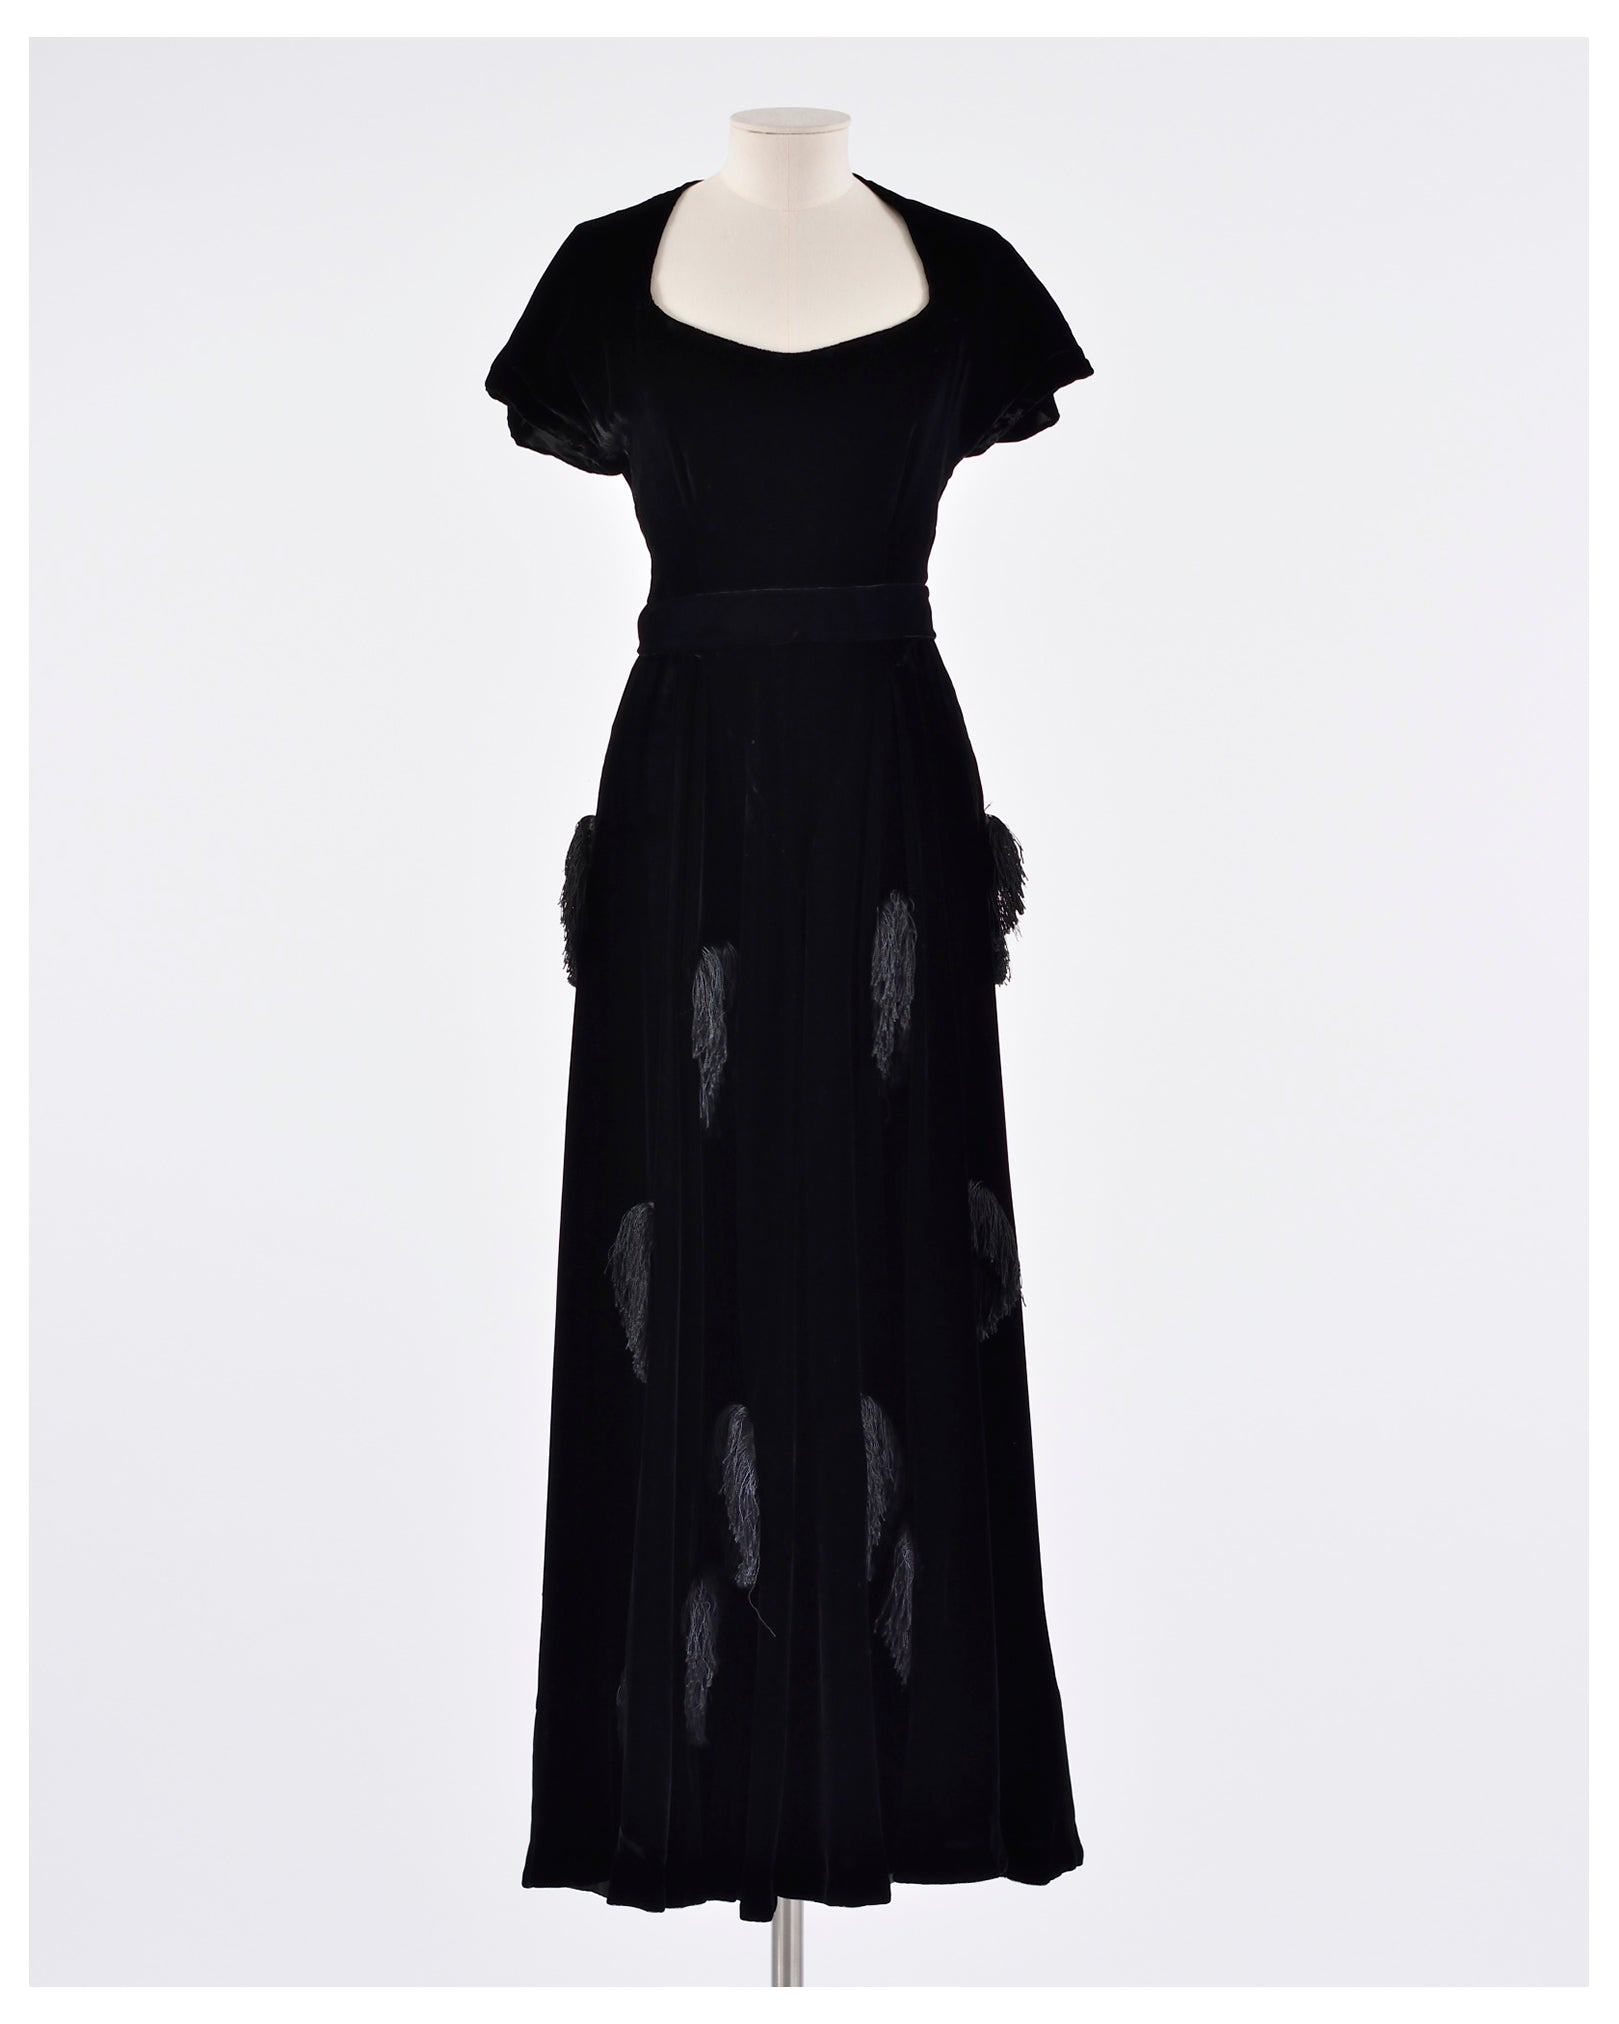 Vintage 1940s Gown Dress